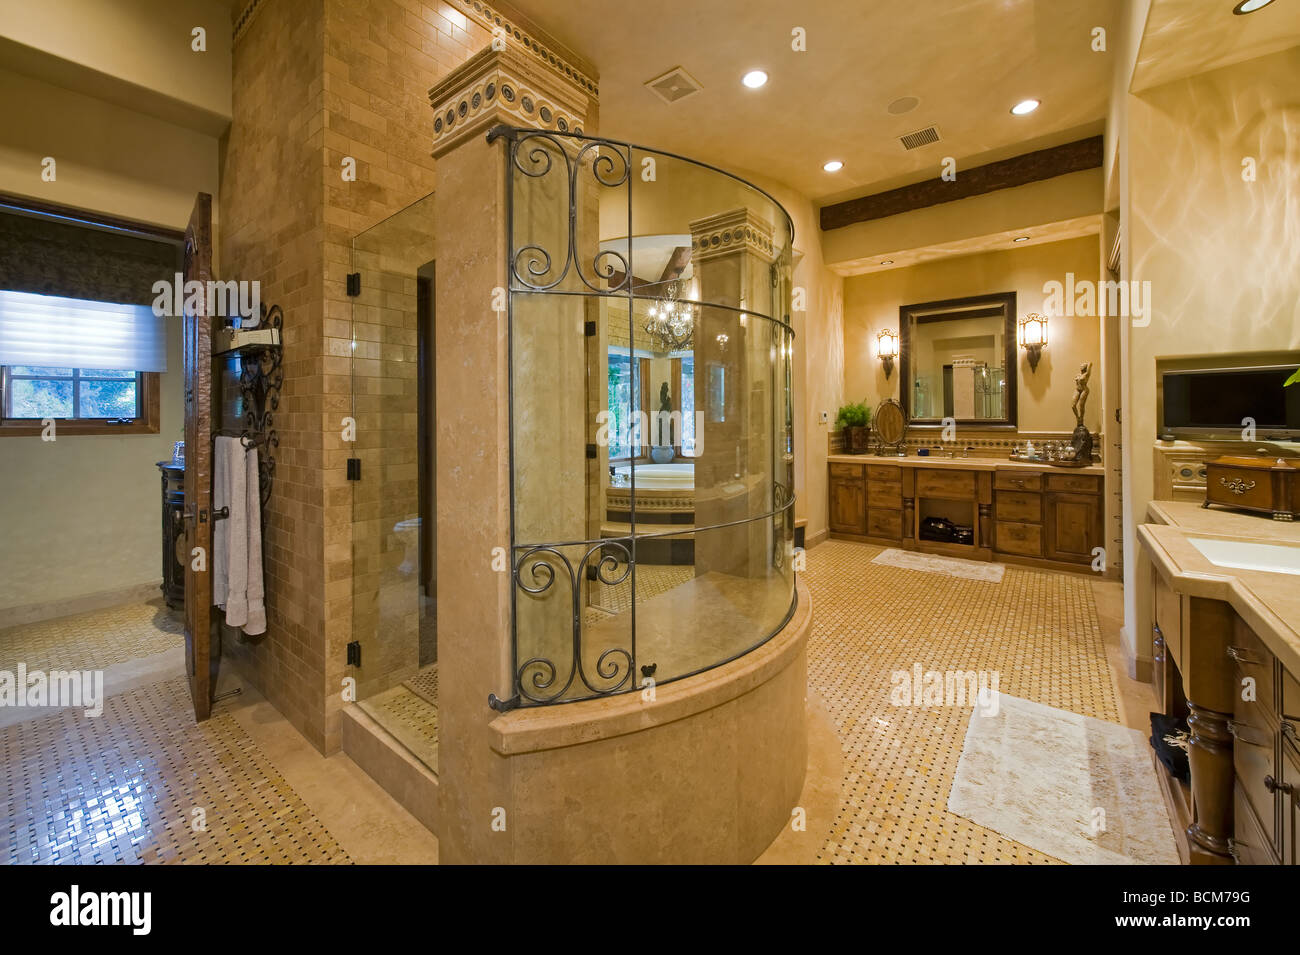 Luxury Large Walk In Showers.Large Luxury Bath With Glass Walk In Shower Stock Photo